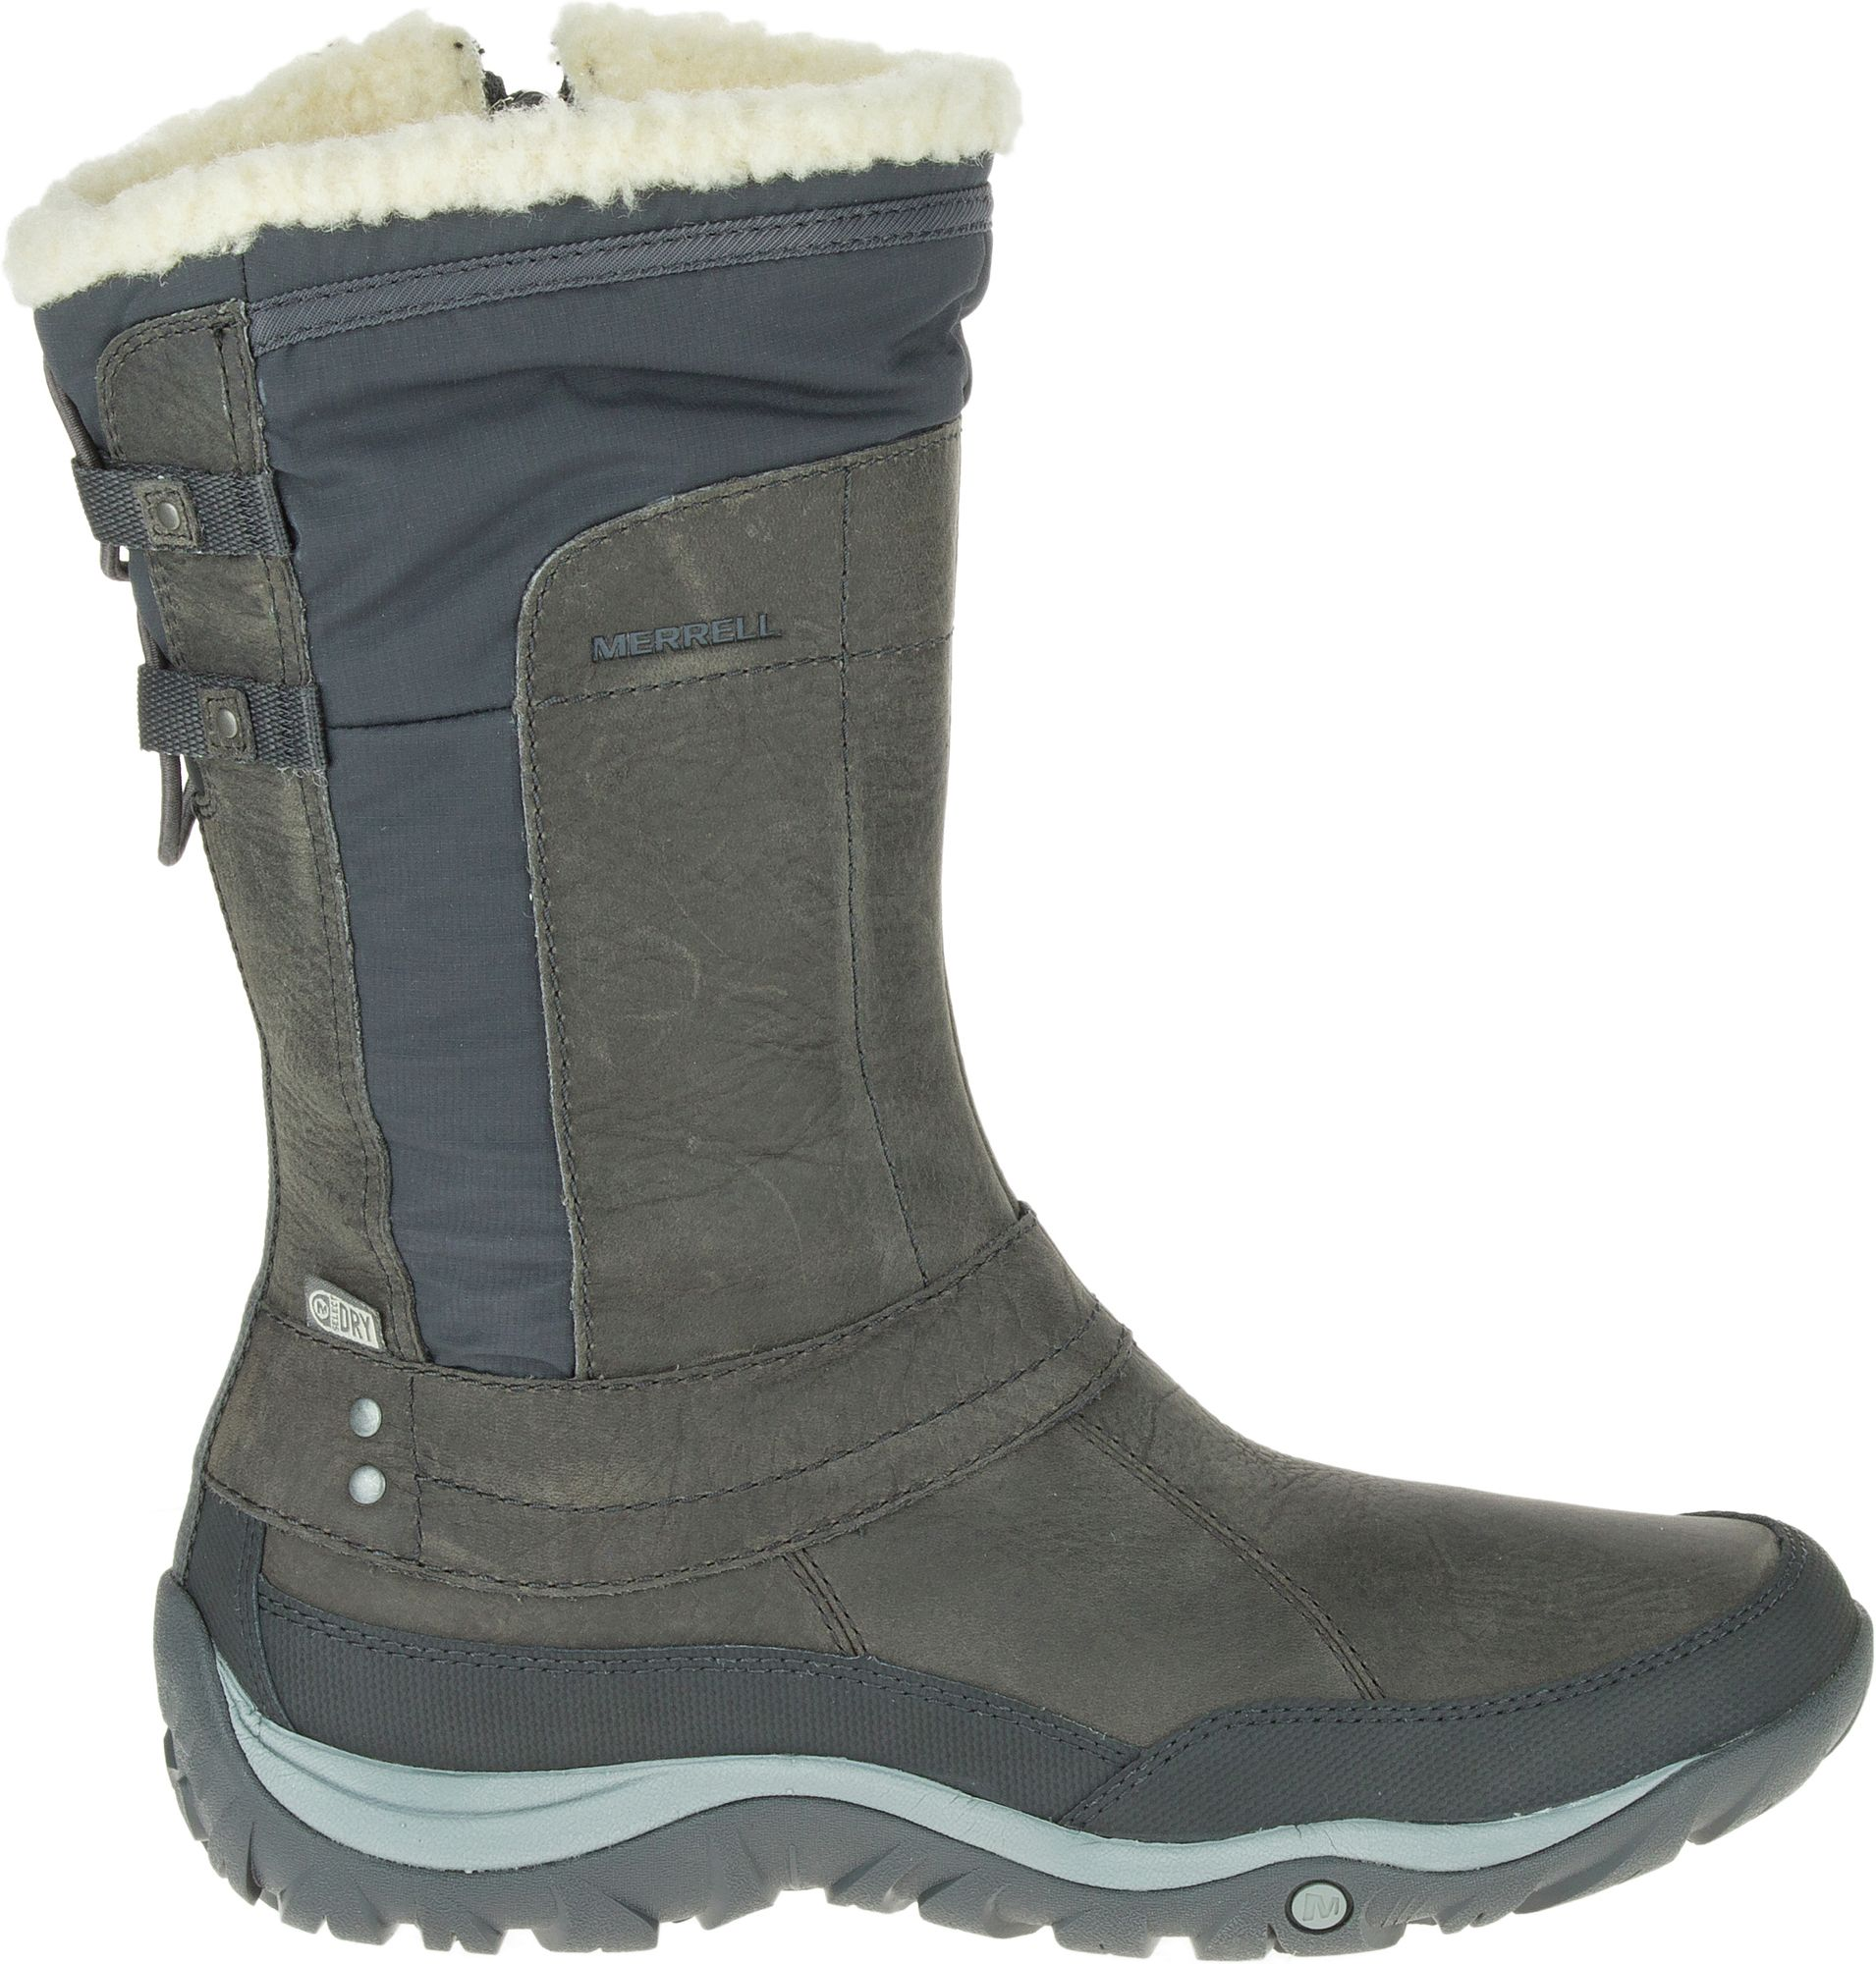 Merrell Womens Murren Mid Waterproof 200g Winter Boots